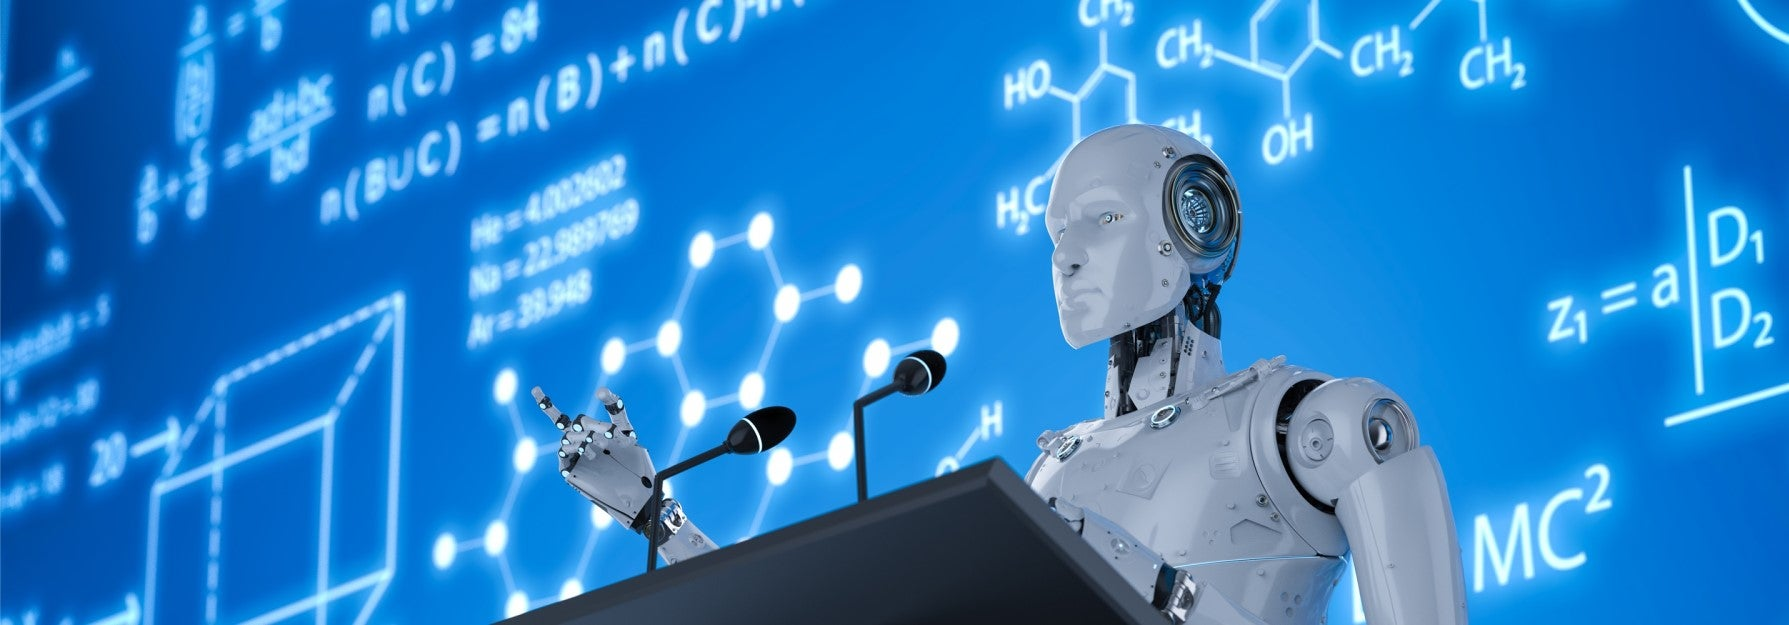 Great Debate - How Automation Impacts Jobs